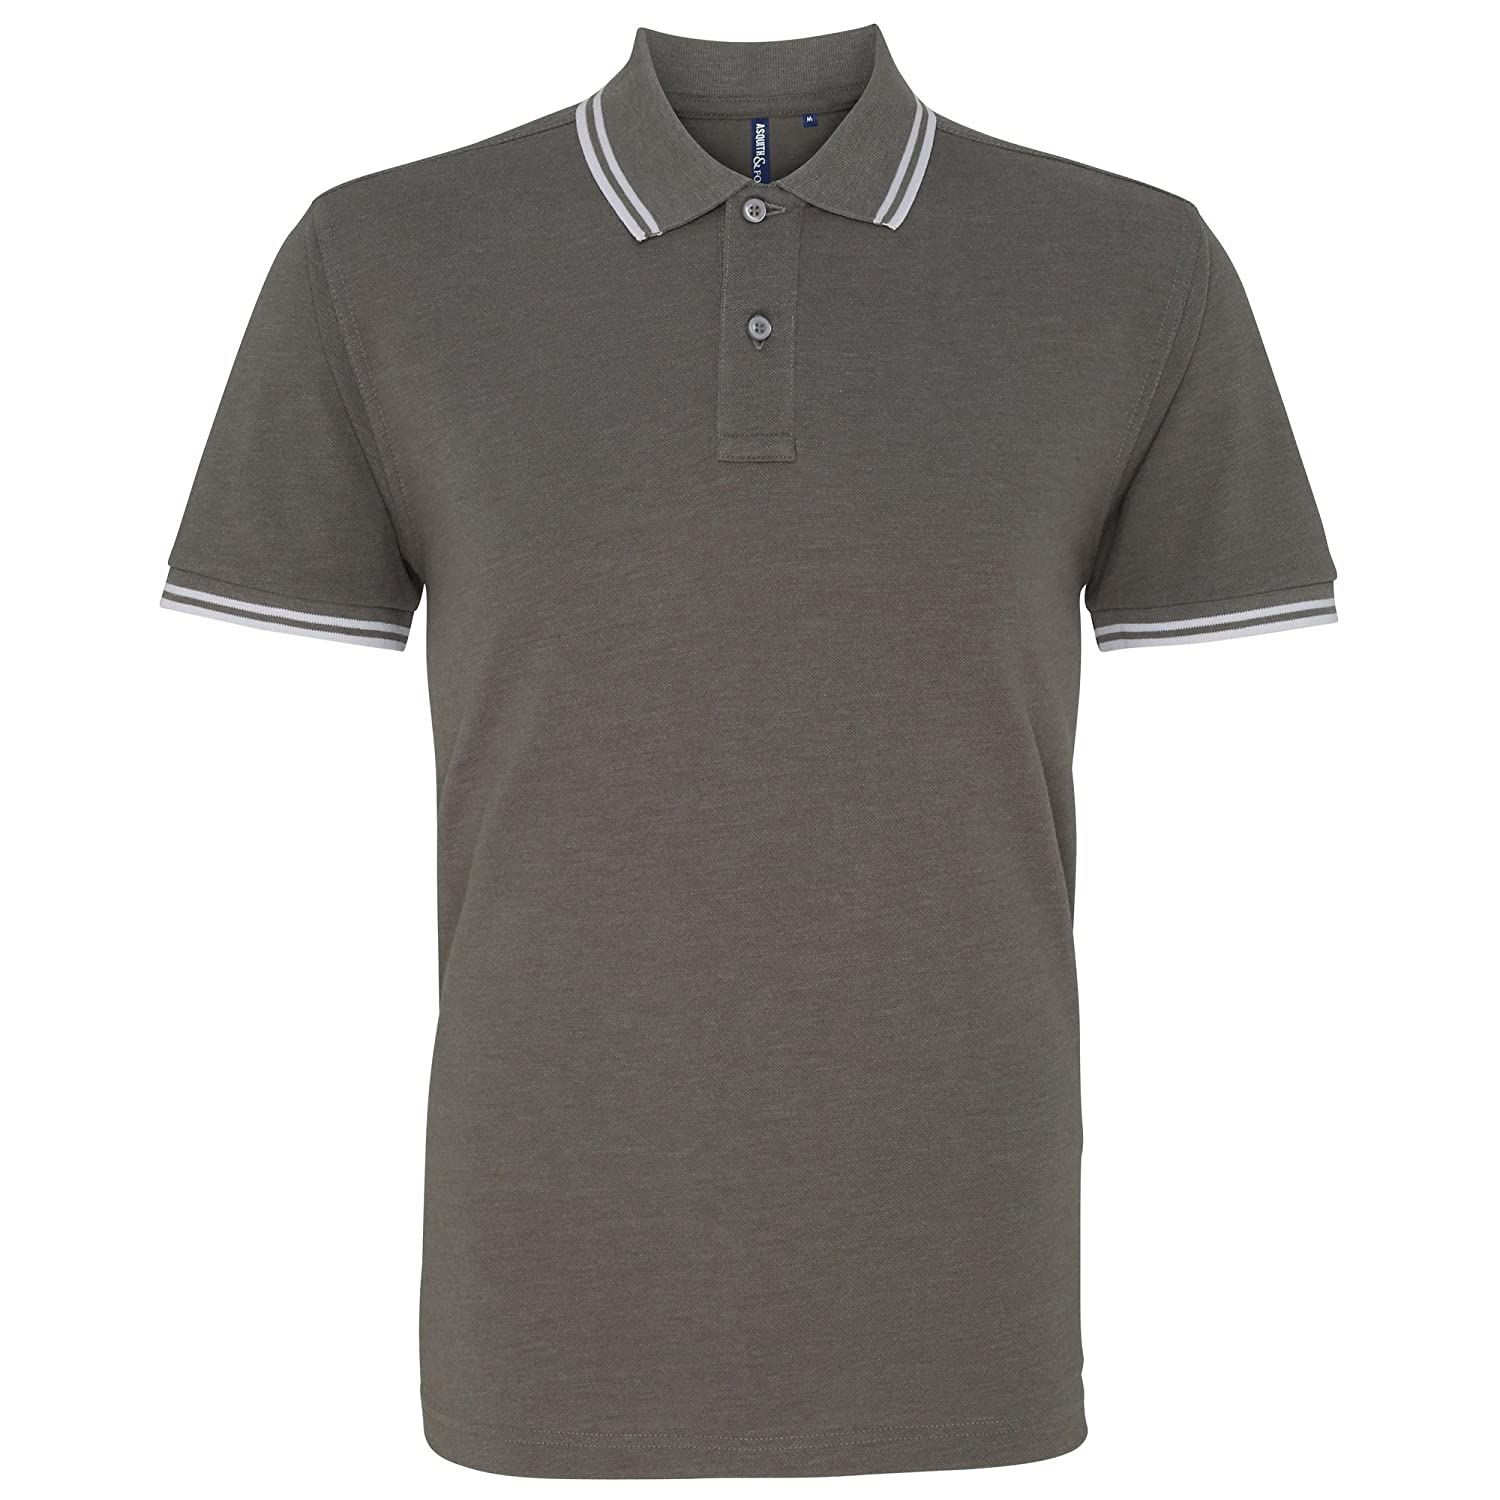 9ce664a2 Fred Perry Polo Shirts Wholesale Price – EDGE Engineering and ...